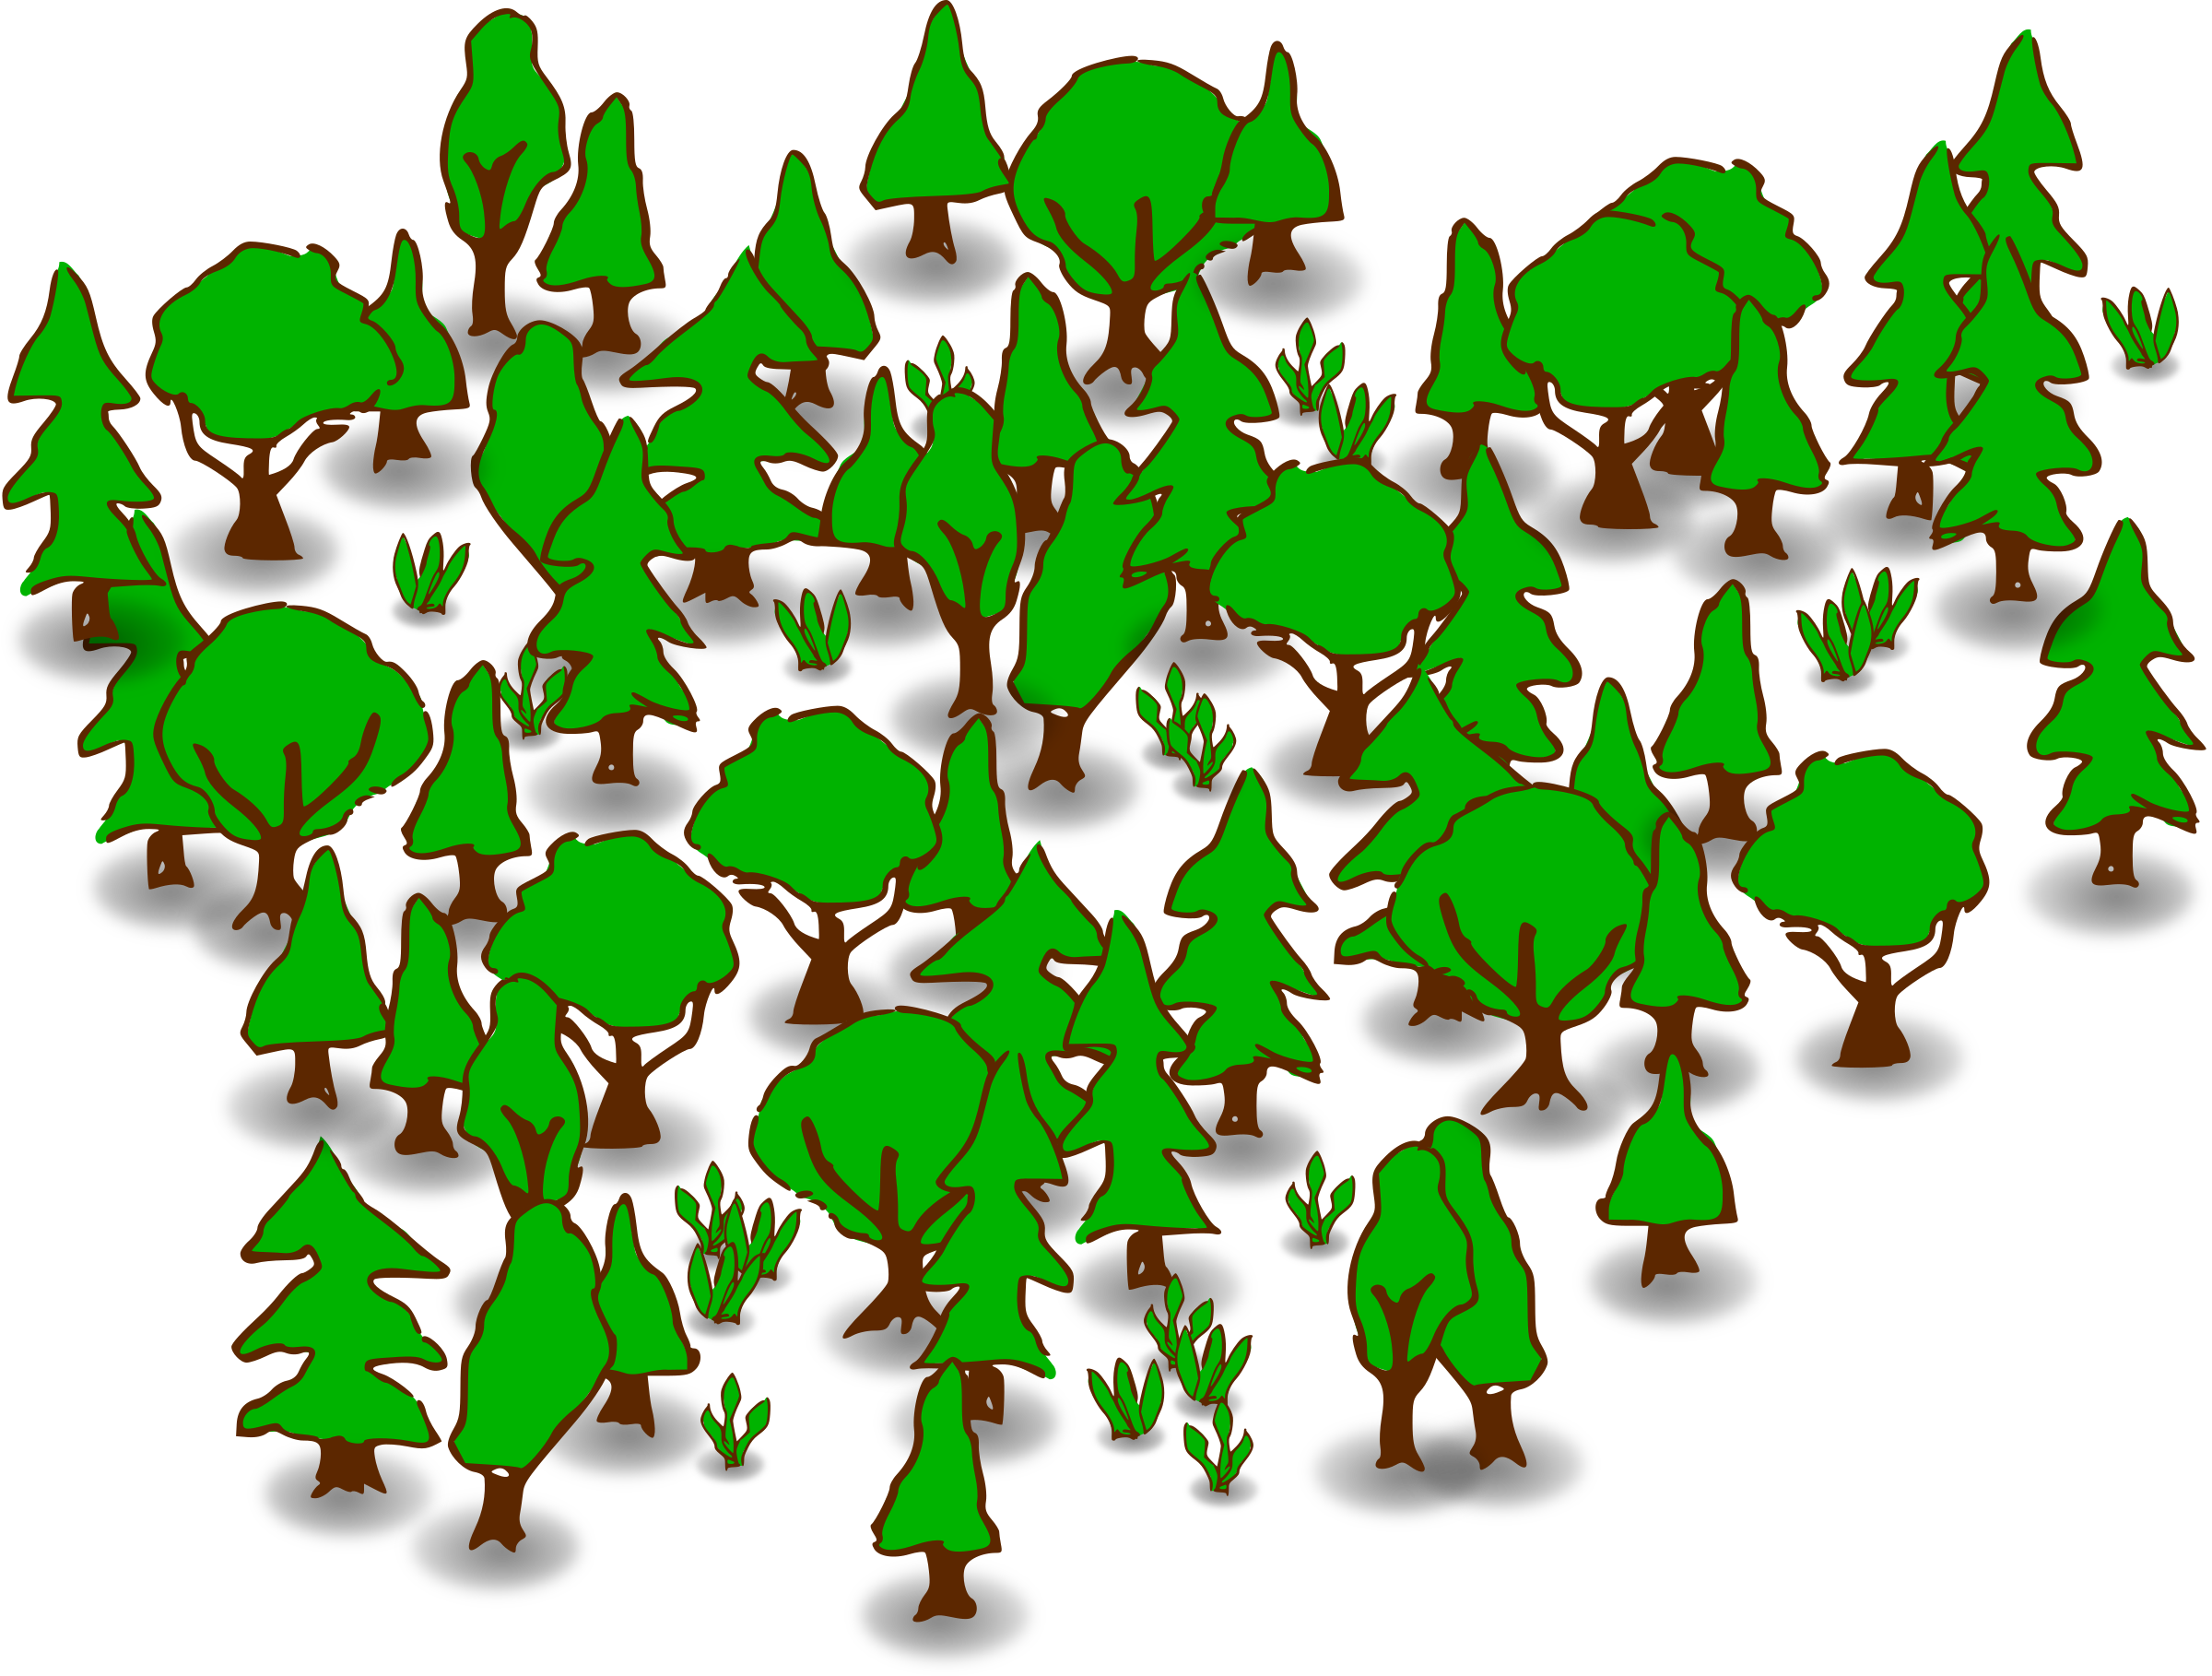 clipart forest rh openclipart org clipart forest fire clipart forest from birds eye view